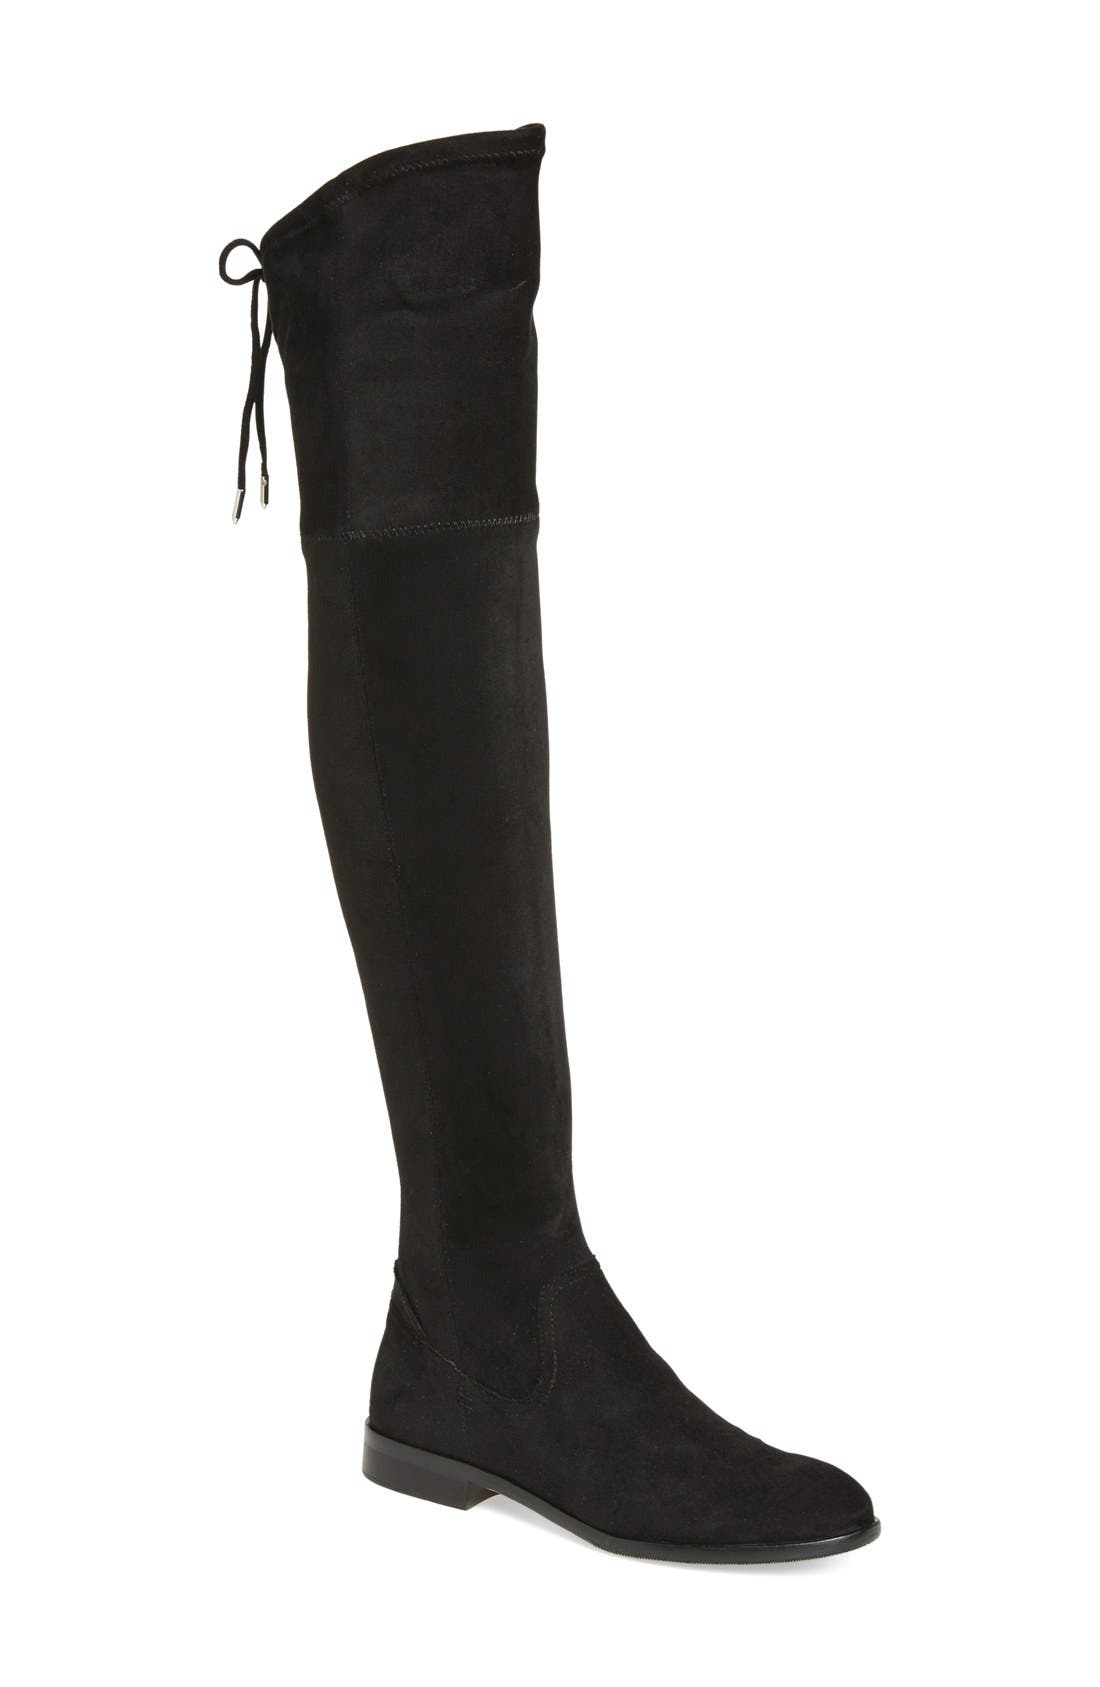 'Neely' Over the Knee Boot,                         Main,                         color, 001